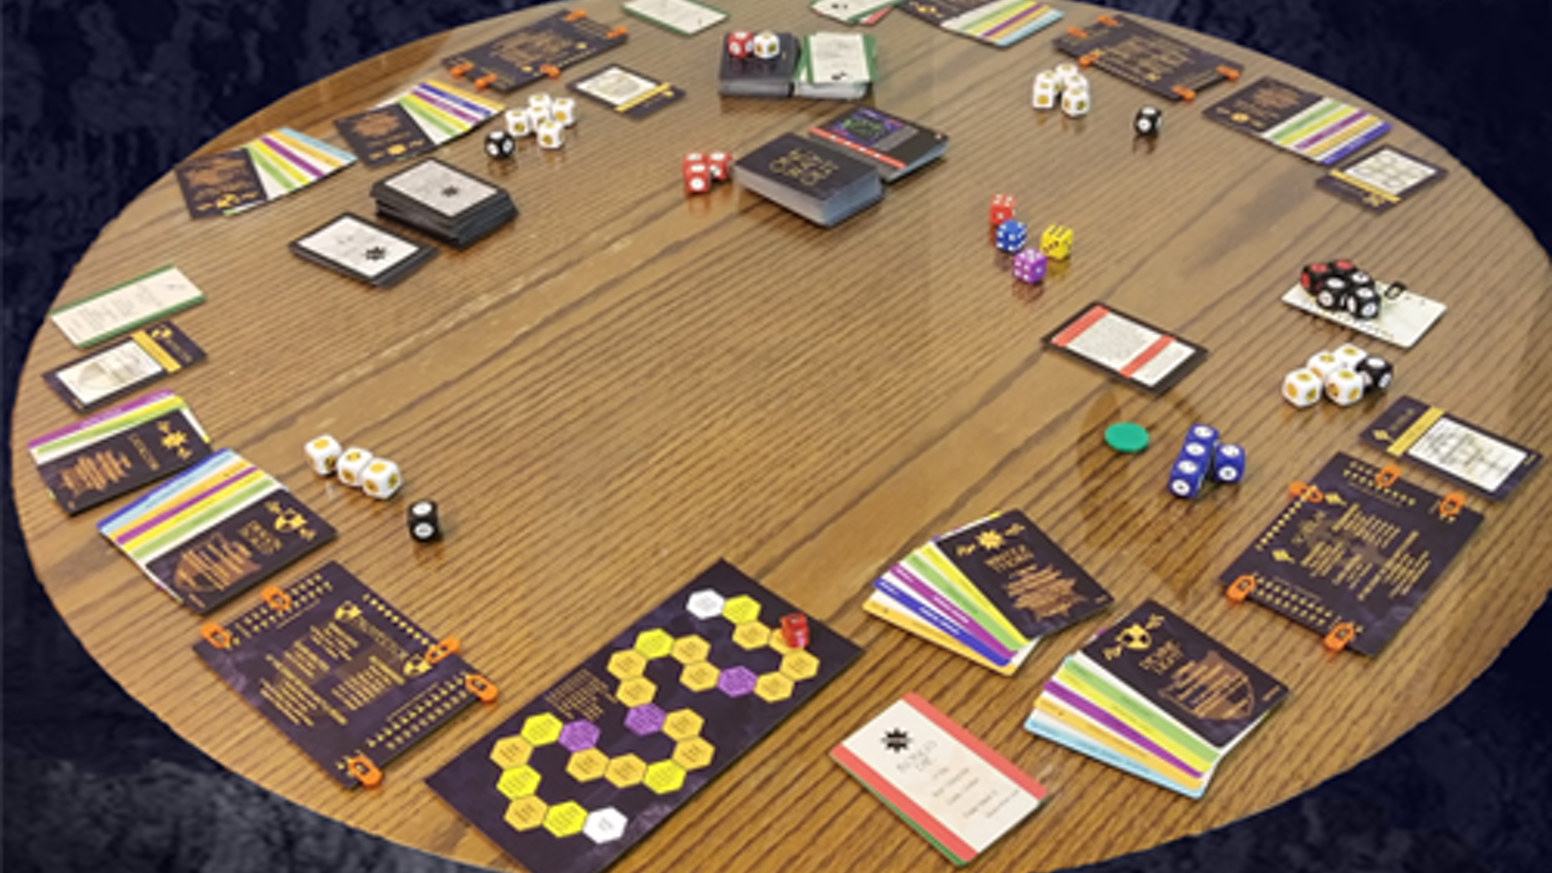 A collaborative, role-playing, card & dice tabletop game.